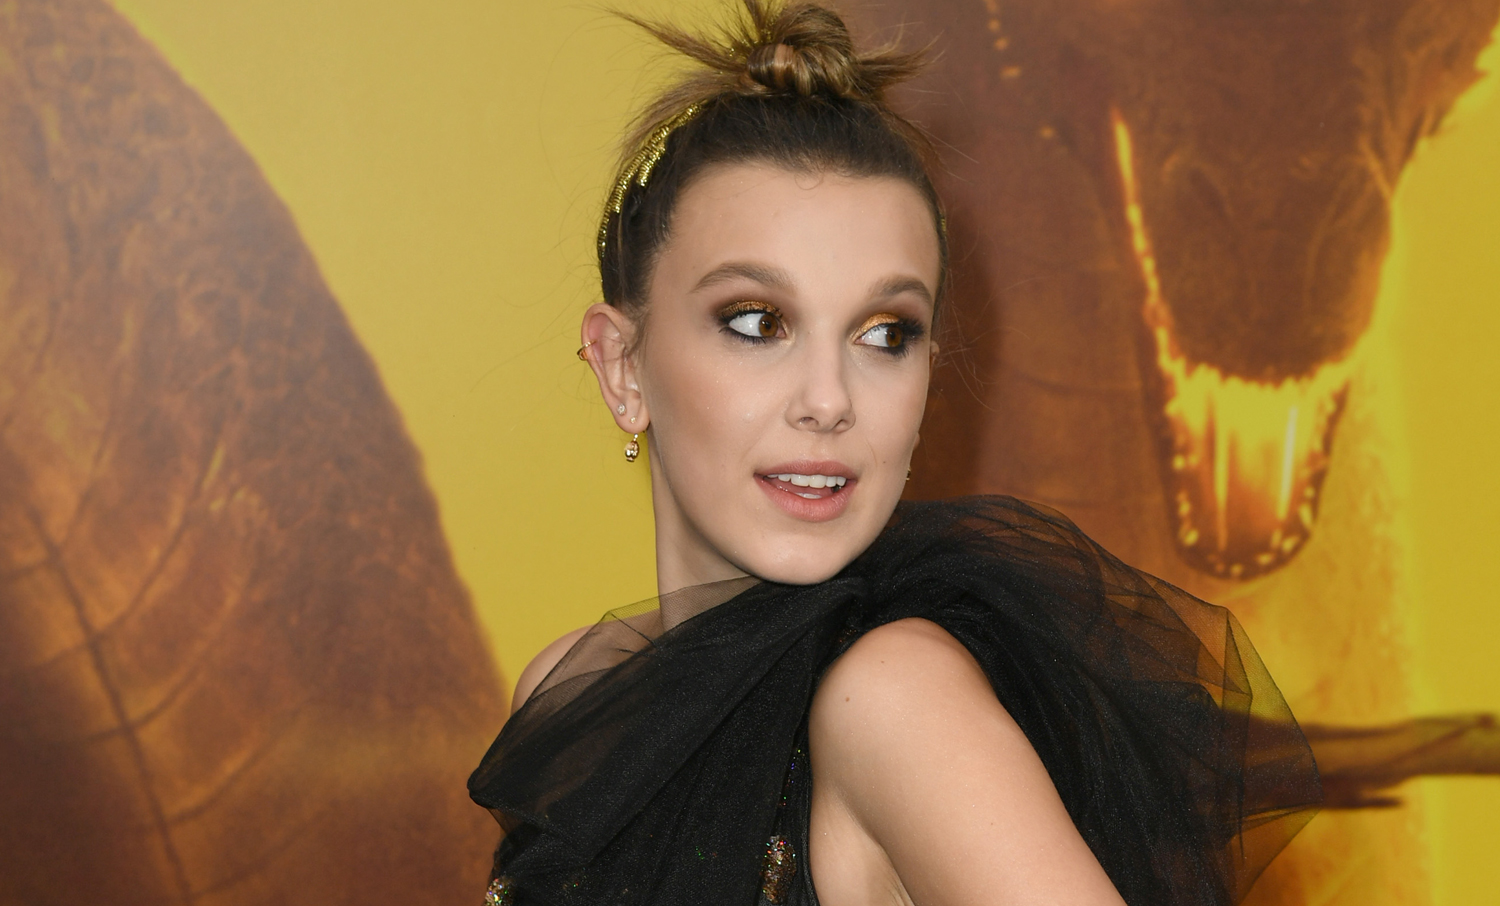 Millie Bobby Brown Goes Glam for 'Godzilla: King of Monsters' Premiere!